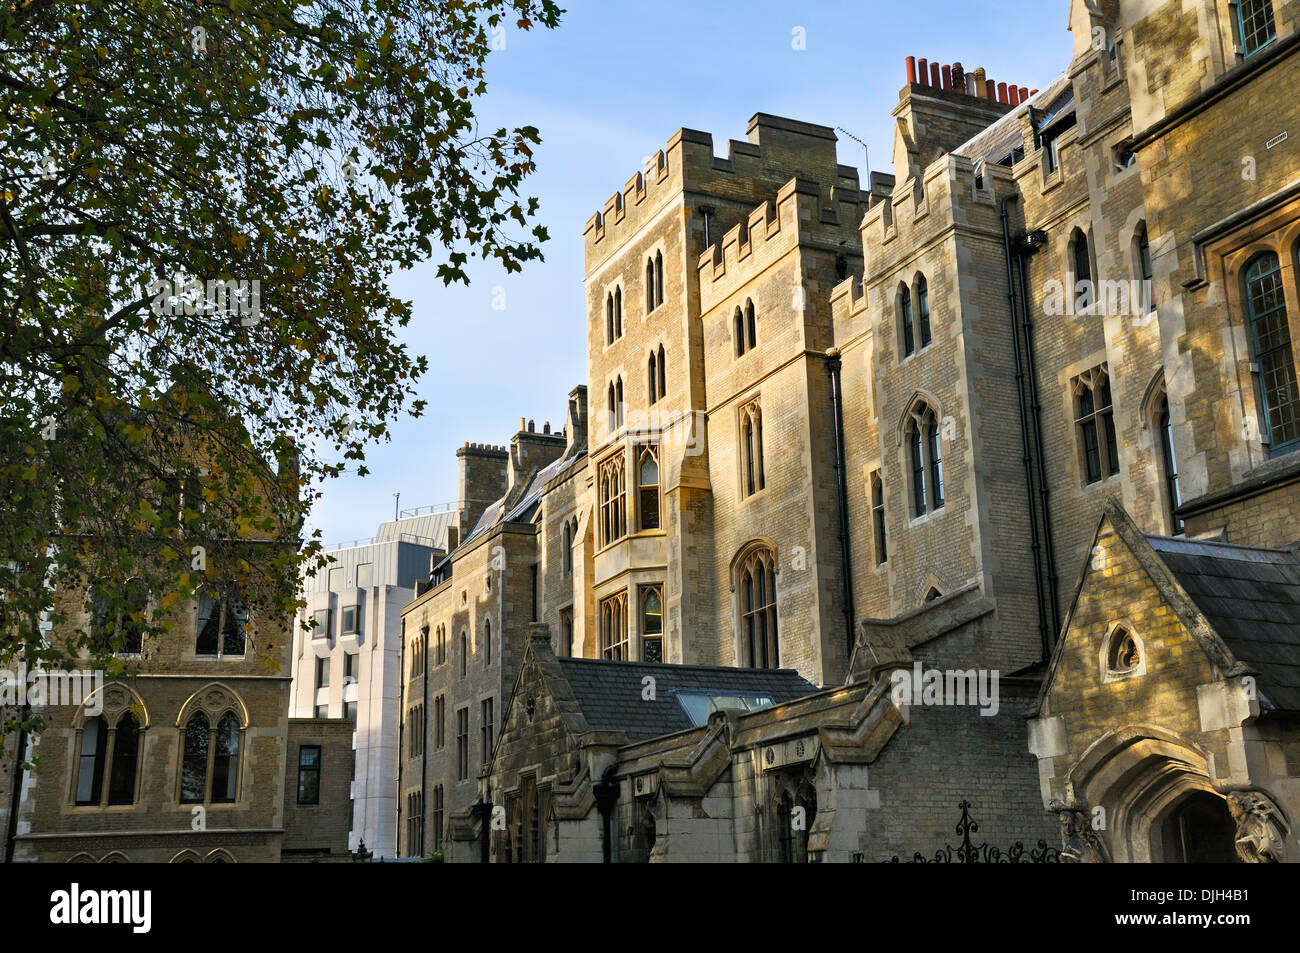 Dean's Yard, Westminster, London, England, UK - Stock Image